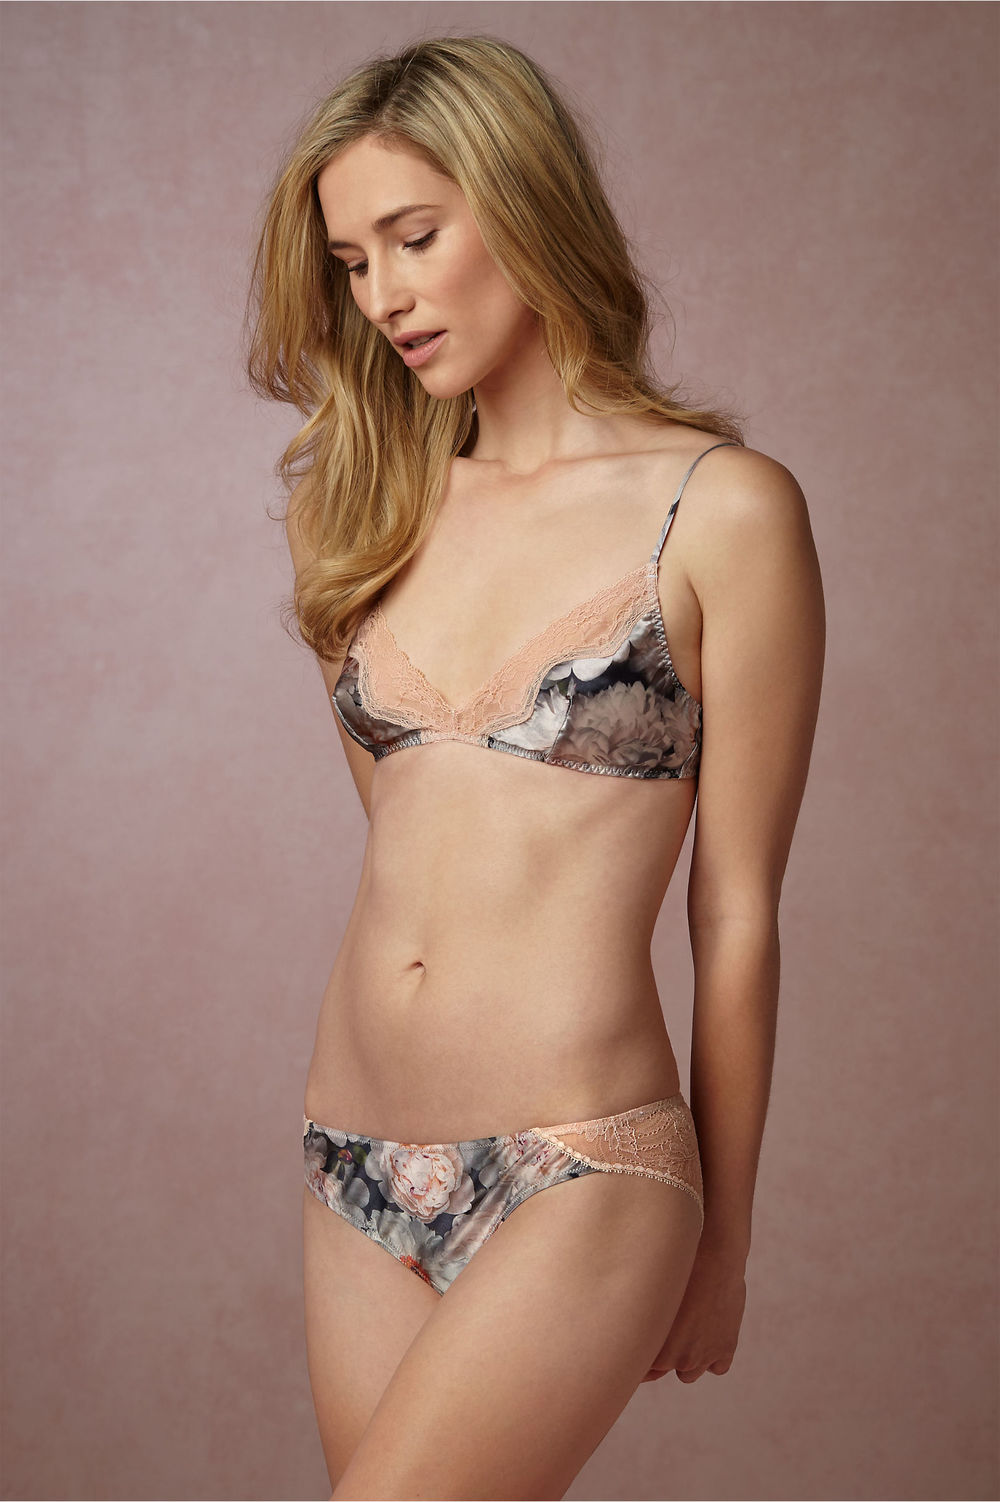 BHLDN bra $50 from $90, and panties $30 from 90